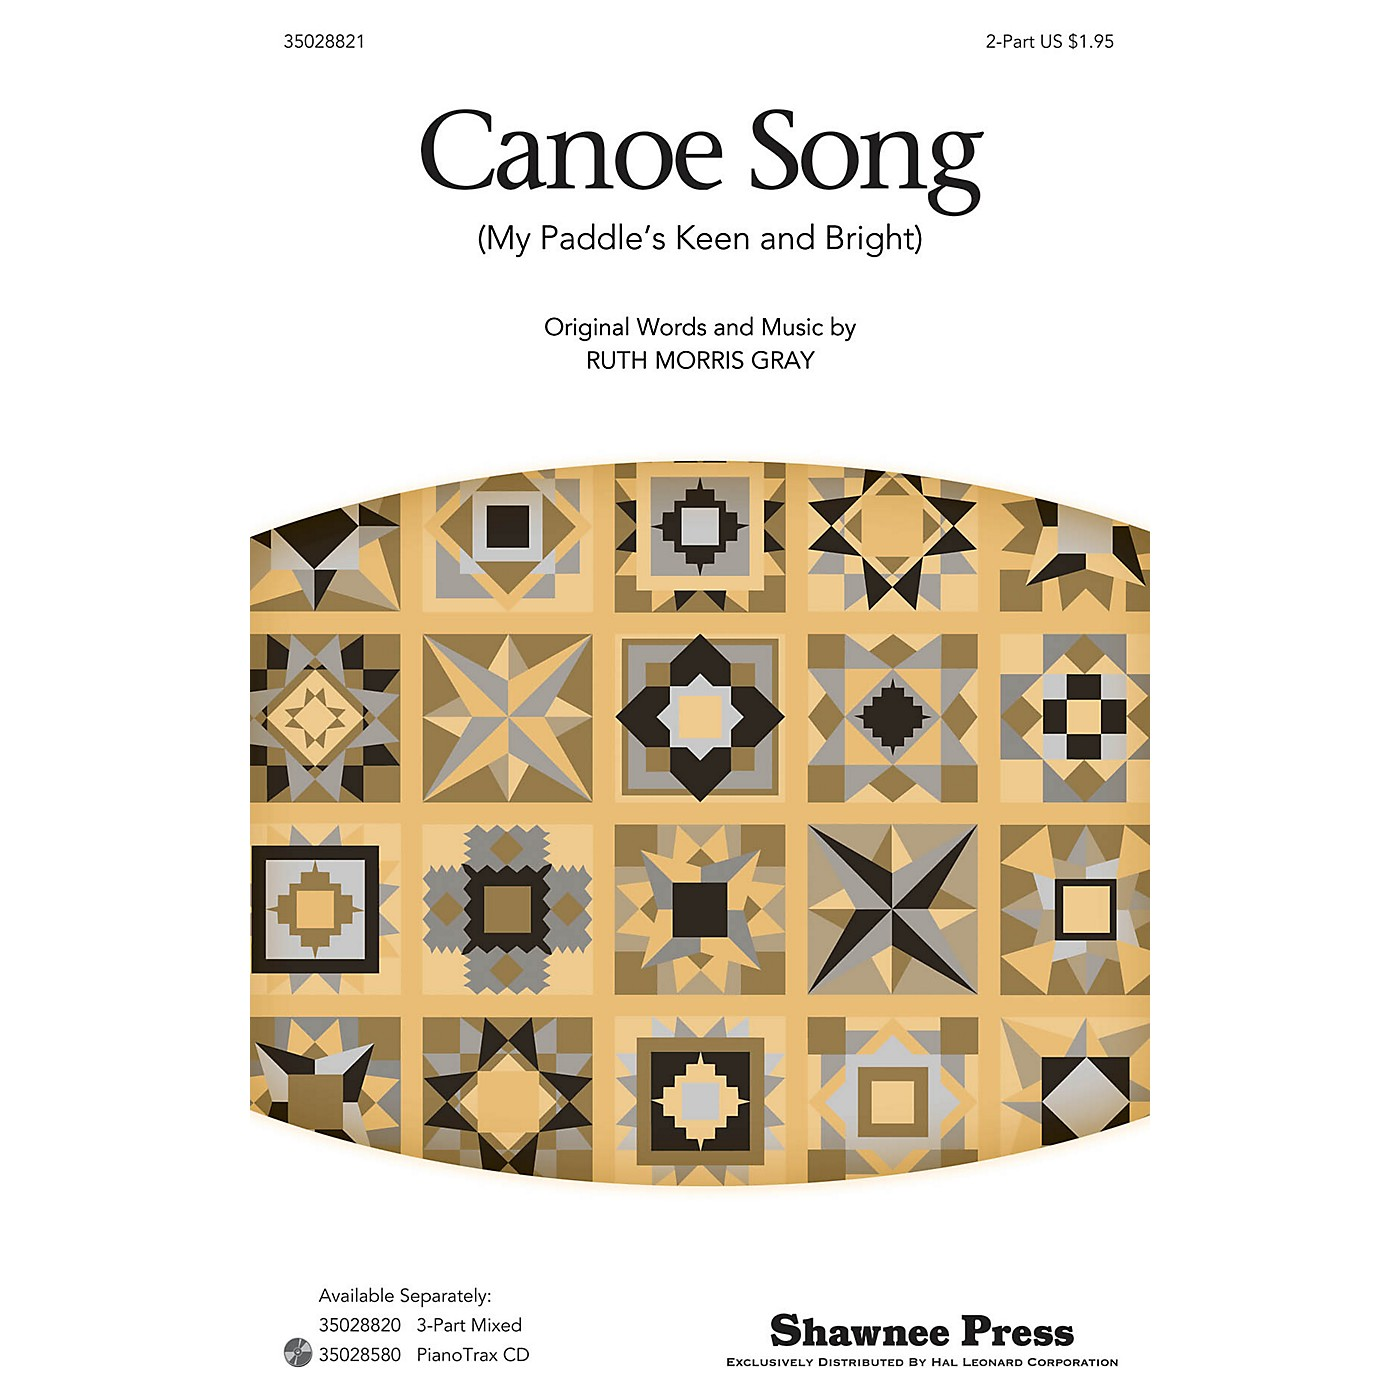 Shawnee Press Canoe Song (My Paddle's Keen and Bright) 2-Part arranged by Ruth Morris Gray thumbnail